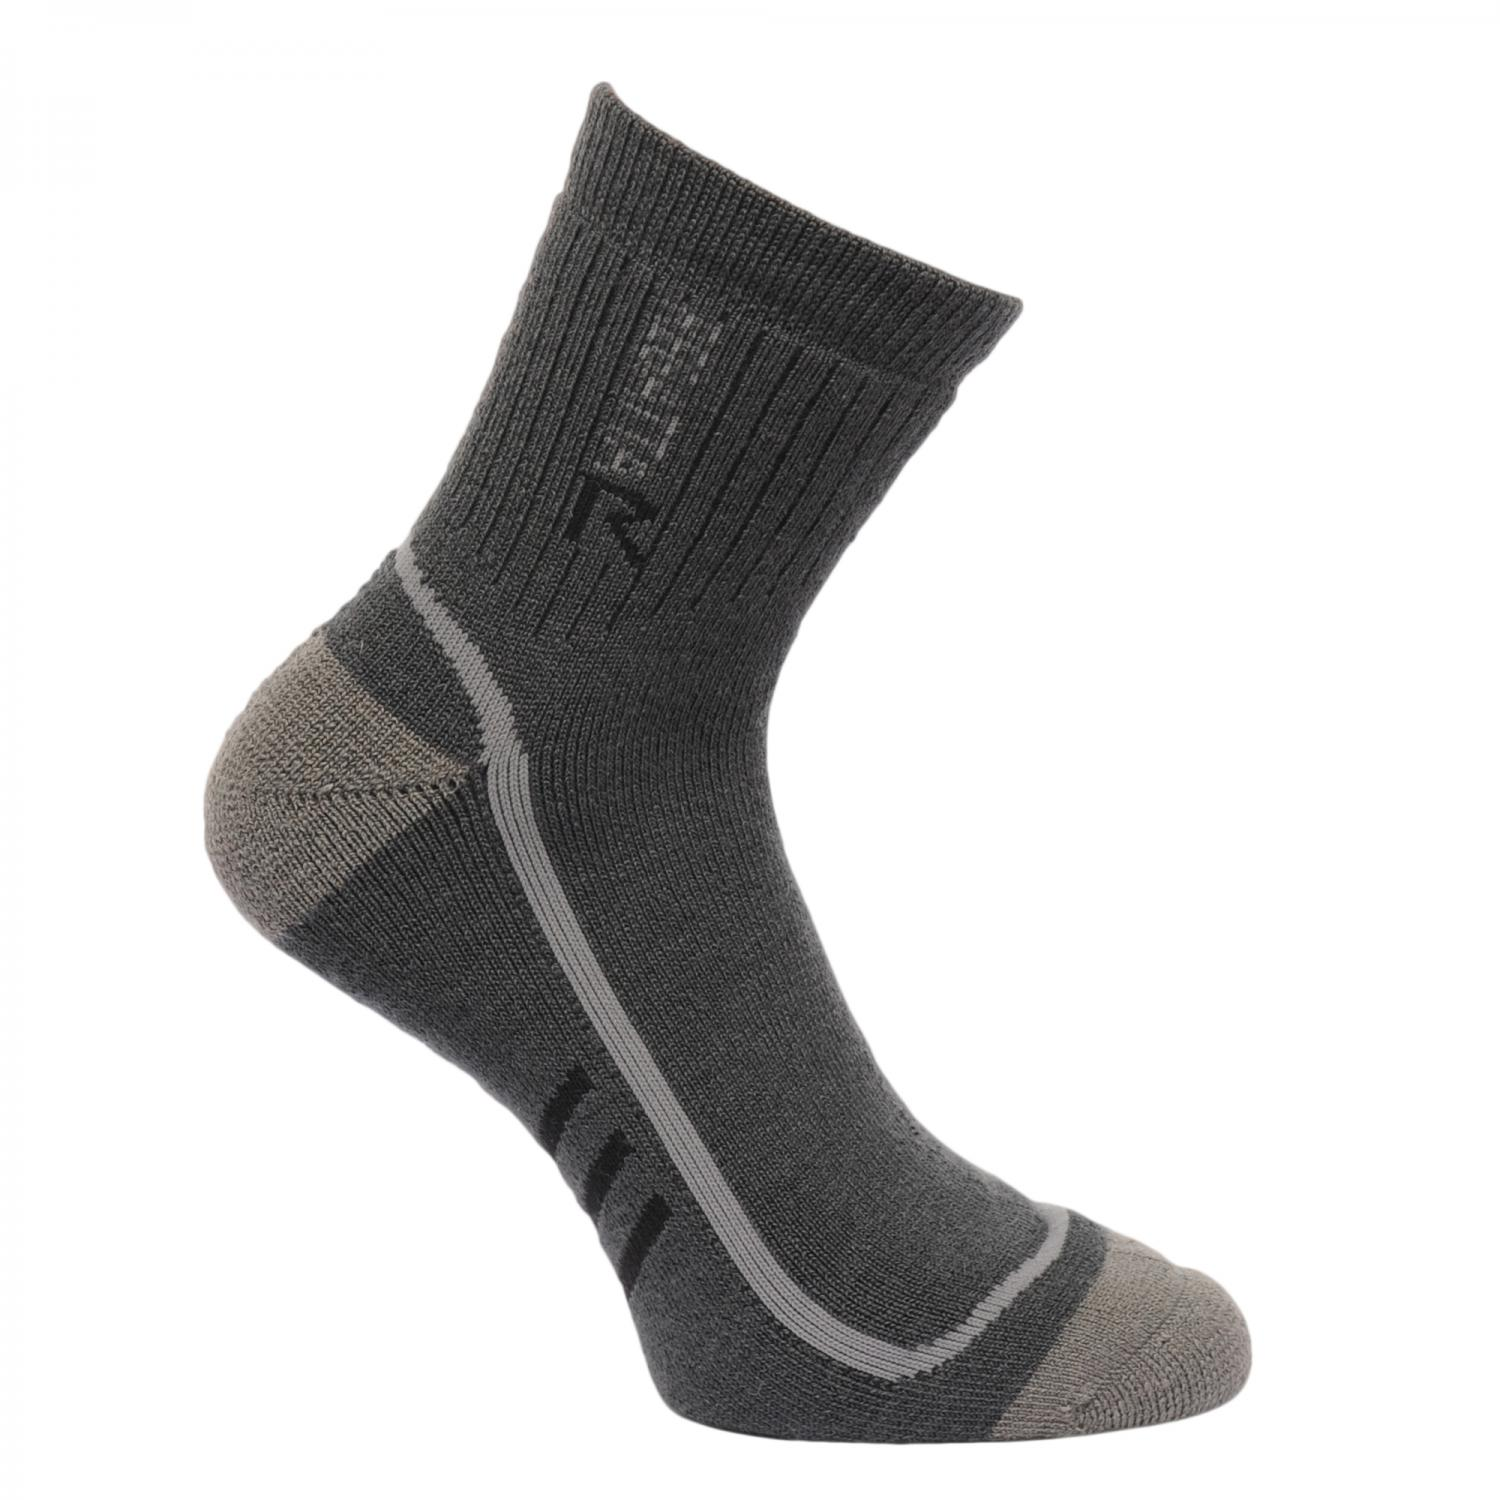 Mens 3 Season Heavyweight Trek and Trail Socks Iron